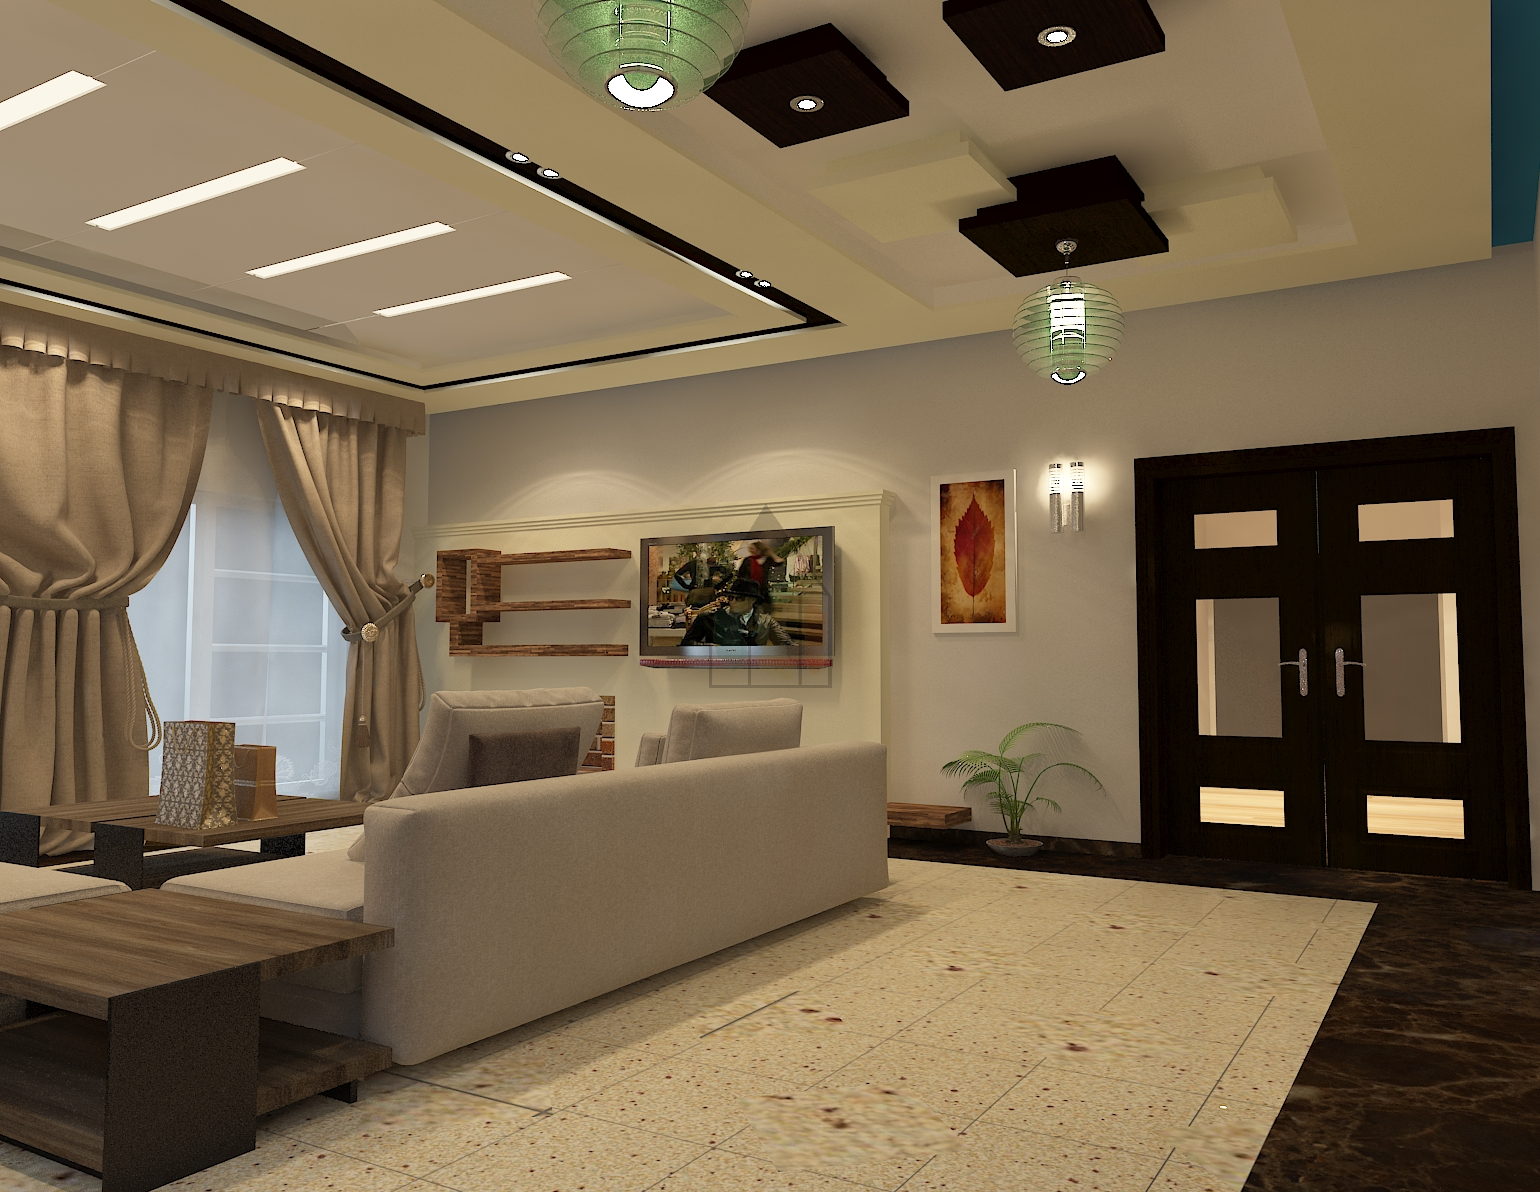 TV Lounge Designs In Pakistan From Many Other TV Lounge Designs On This  Website. This Pakistani Style TV Lounge Has Open Space And Yet All The  Doors Are Not ...